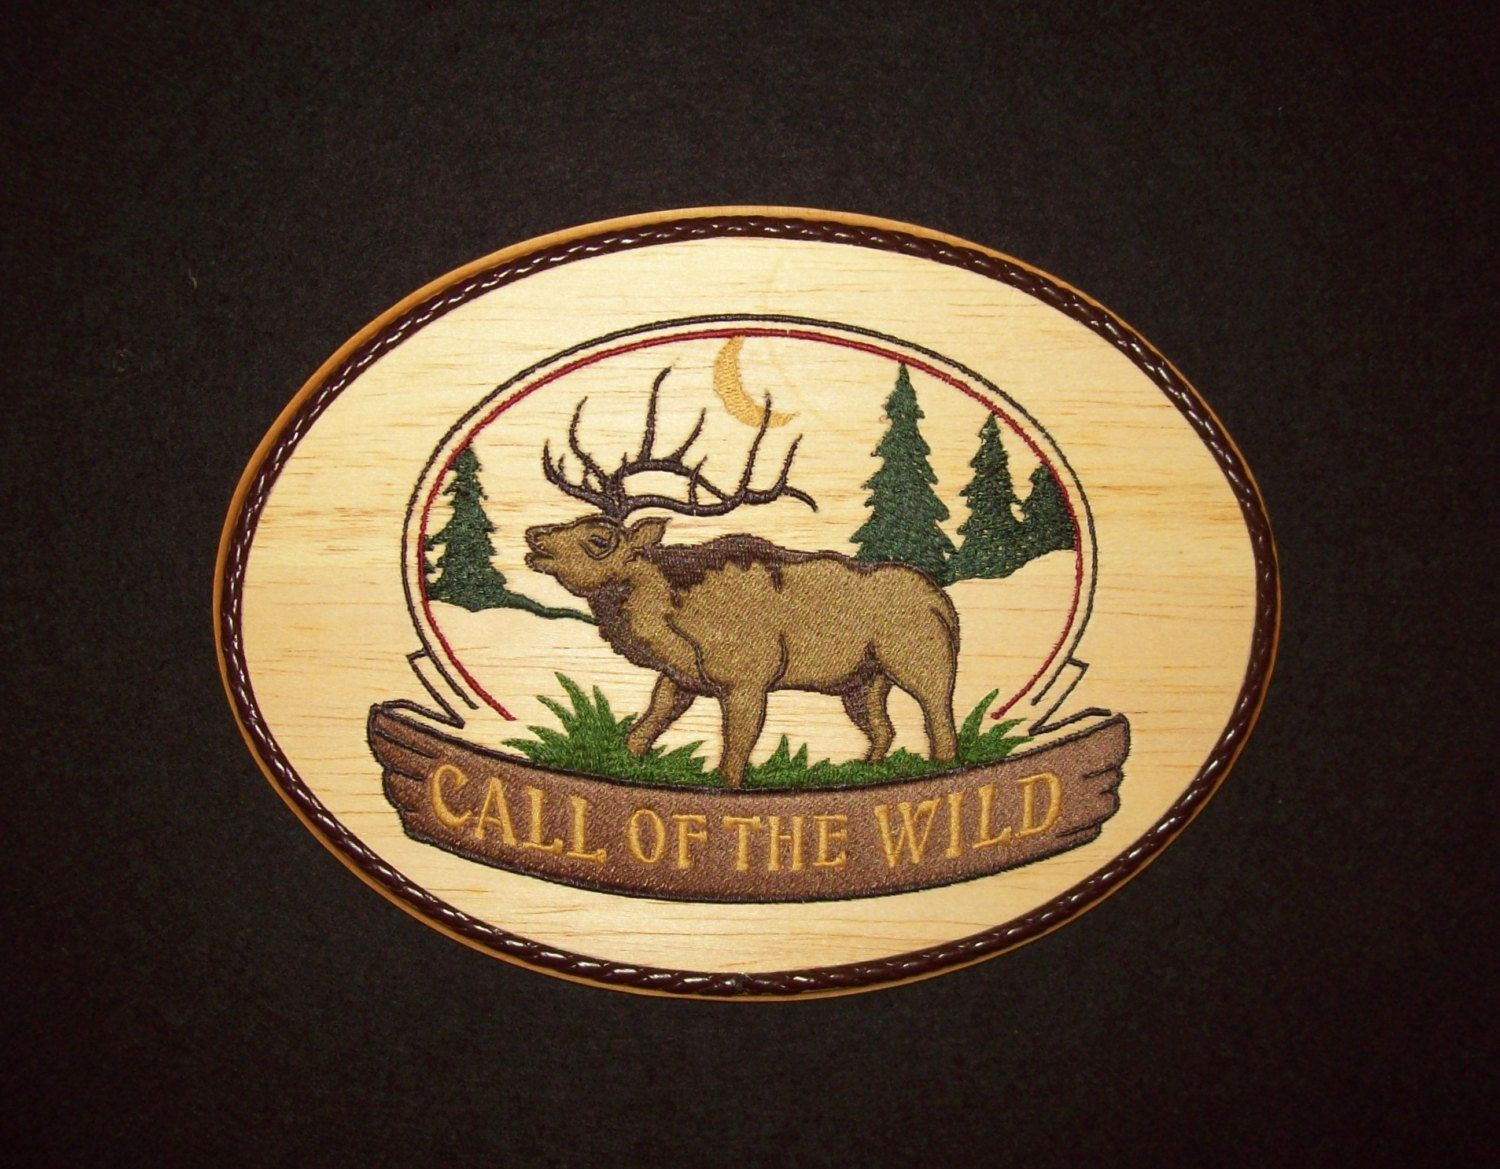 Elk wall hanging embroidery wood art woodland decor wildlife call of the wild elk woodland wildlife wall decorembroidery on balsa wood by amipublicfo Image collections